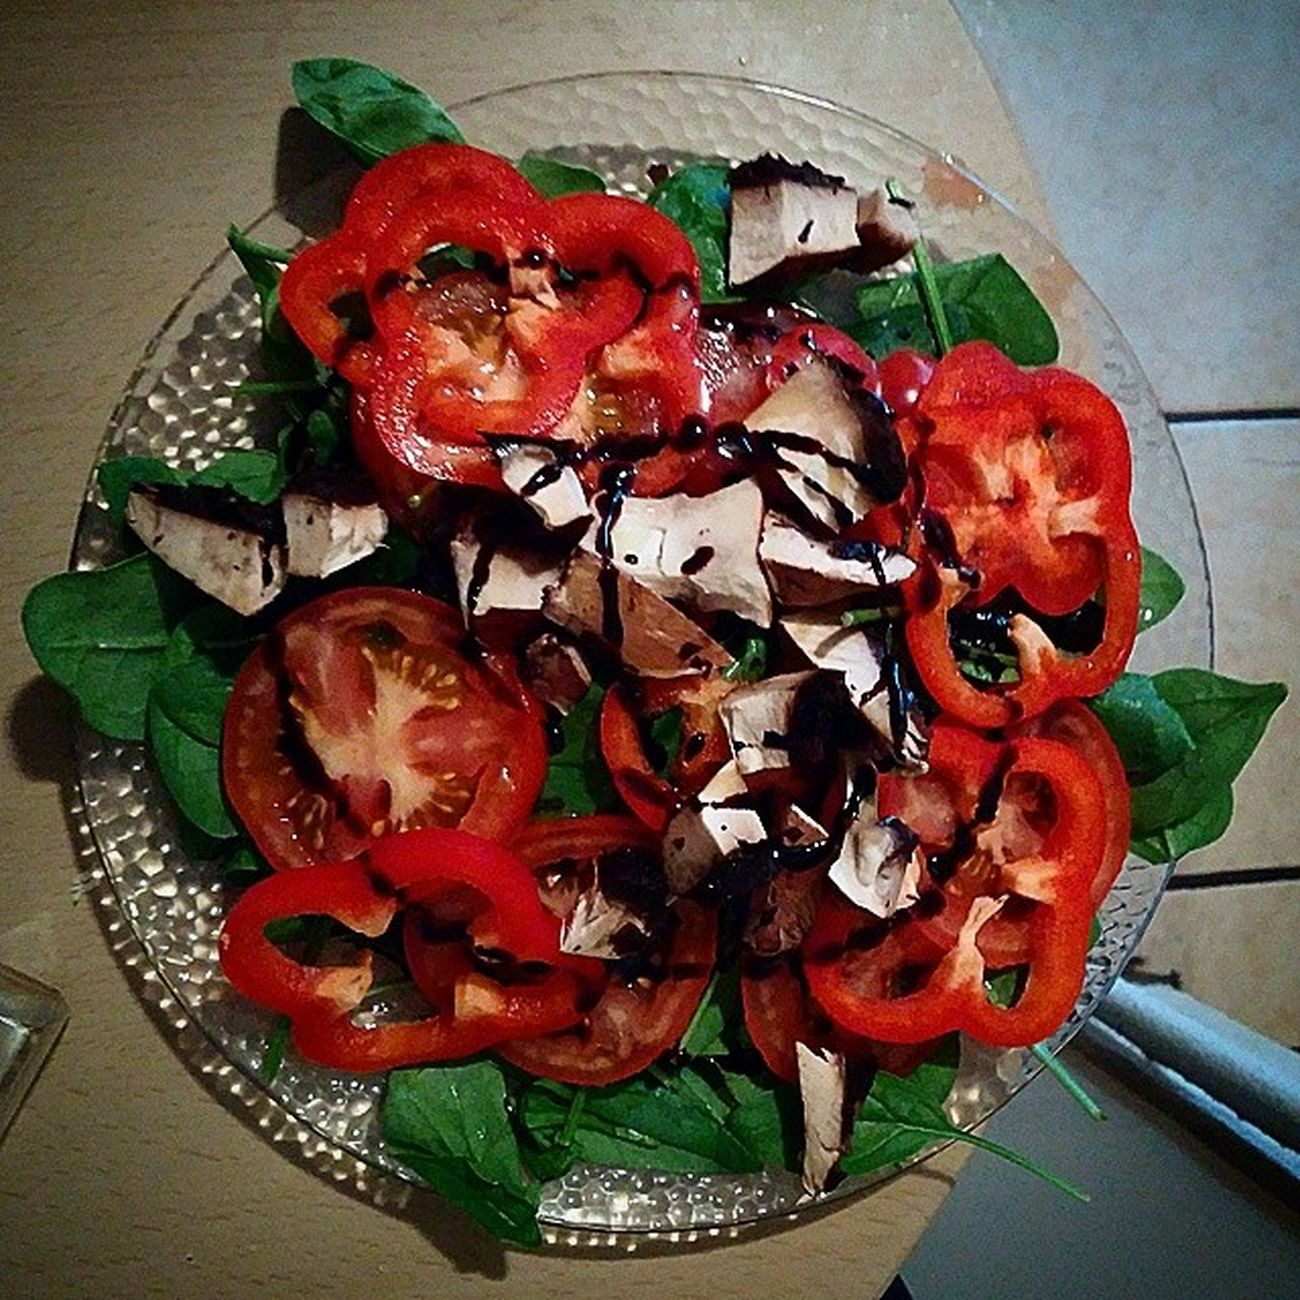 They call me goat.... dinner equals leaves...... Salad Organicredpepper Organicmushrooms Organicspinach organictomatoes pinkseasalt oiliveoil balsamic vinaigrette